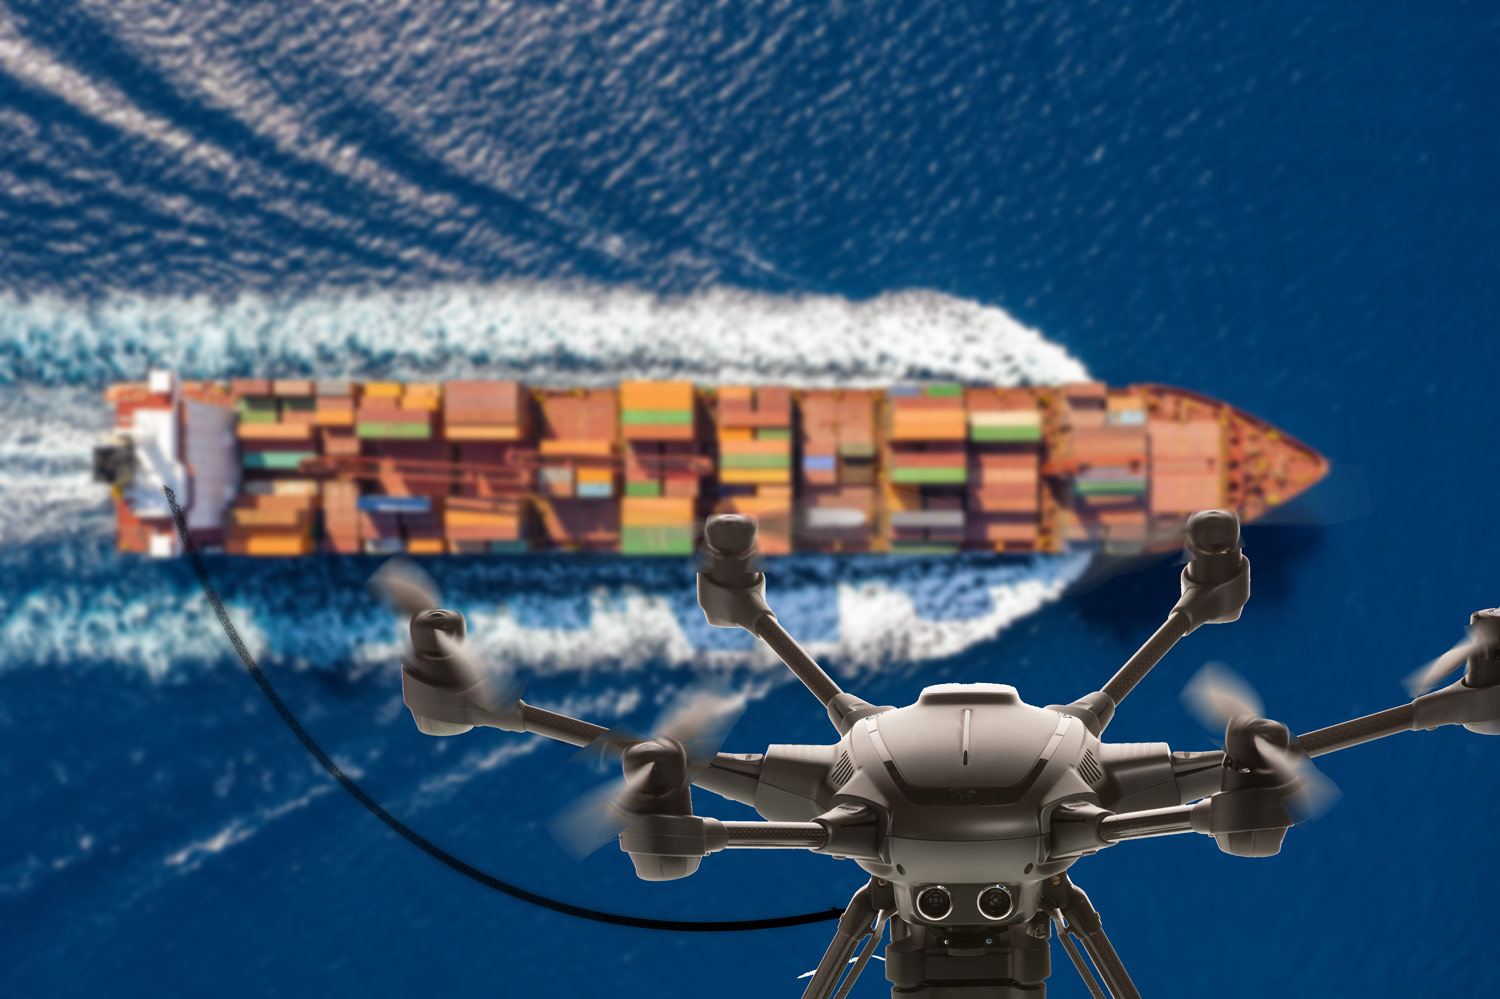 Tethered drones could expanding shipping horizons